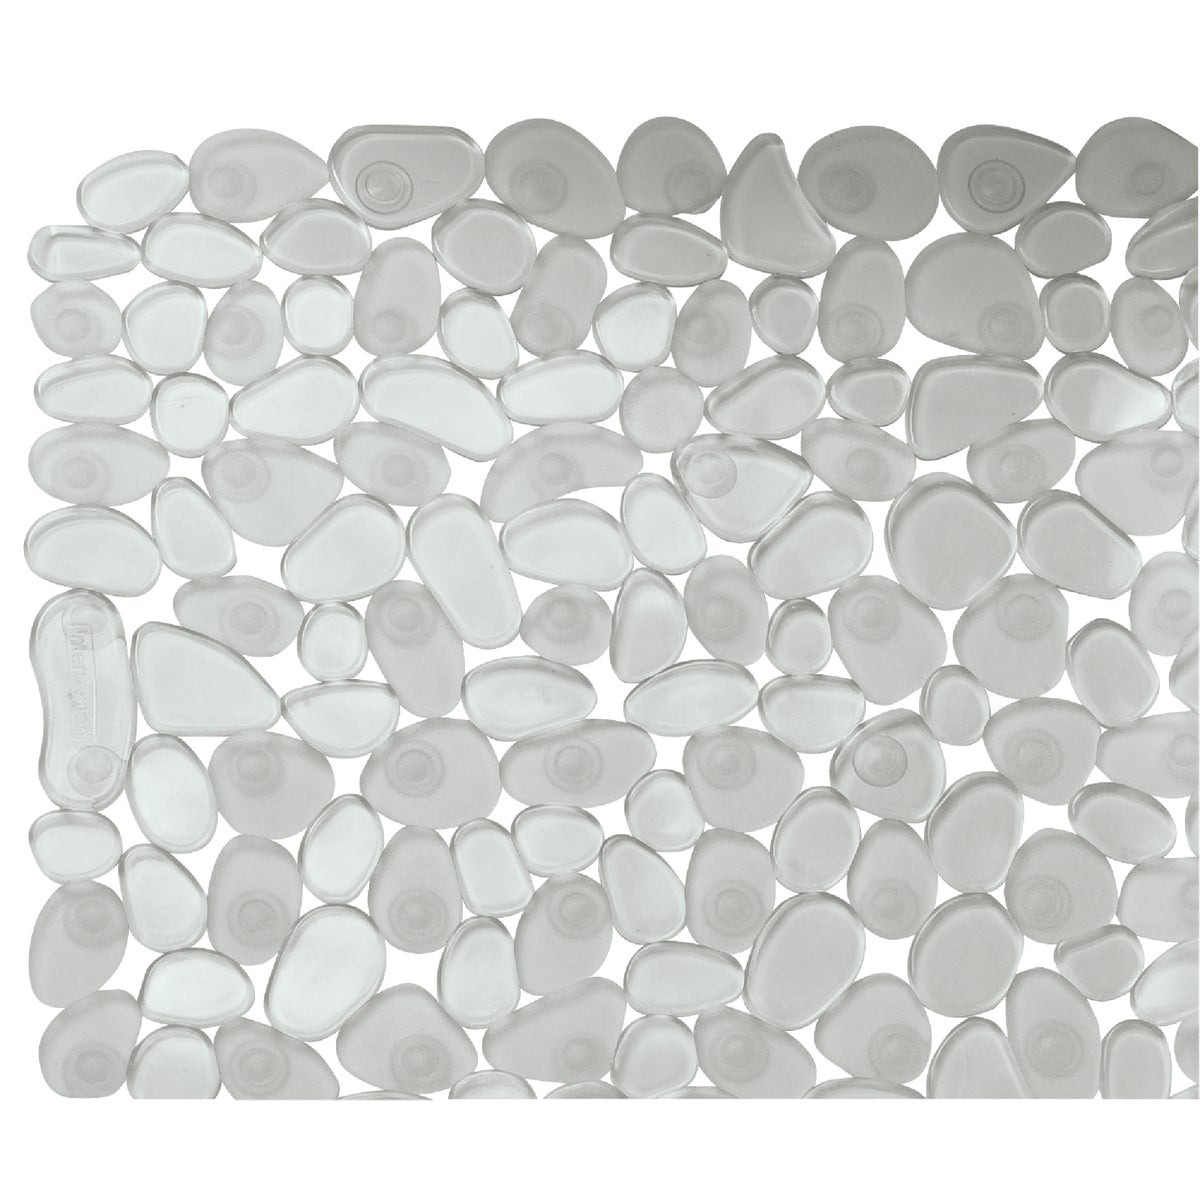 CLEAR PEBBLZ BATH MAT - 80010 by Interdesign Inc